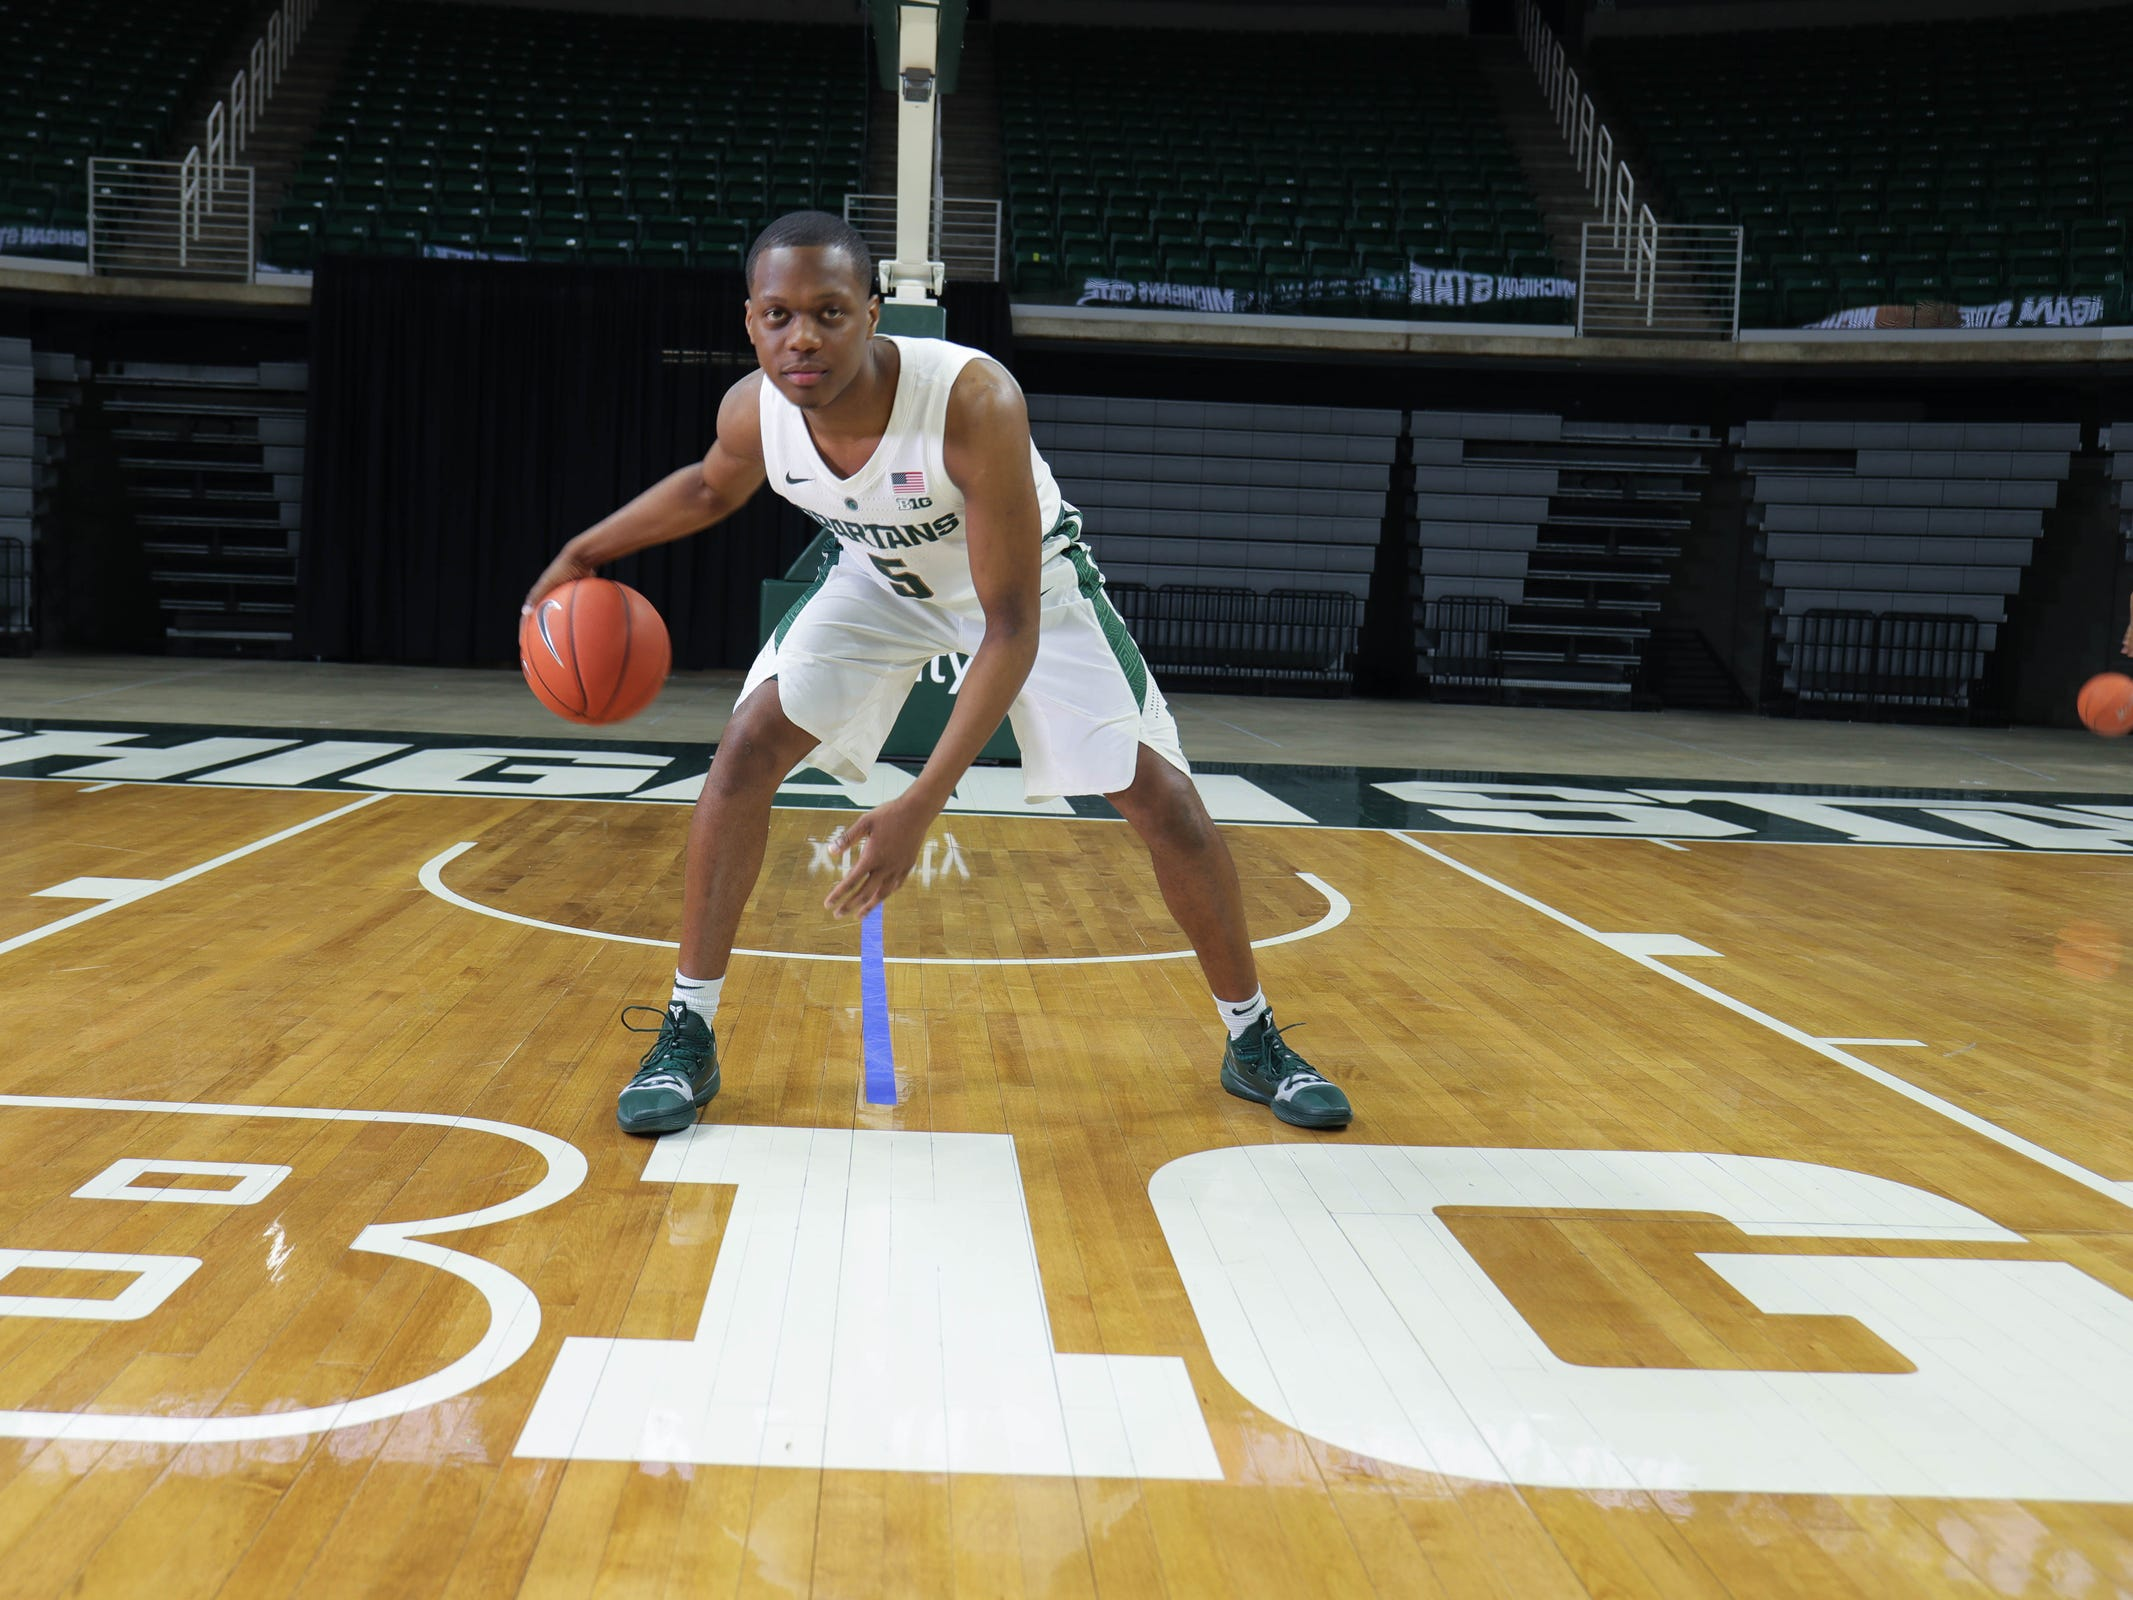 Michigan State guard Cassius Winston at media day Thursday, Oct. 25, 2018 at Breslin Center in East Lansing.